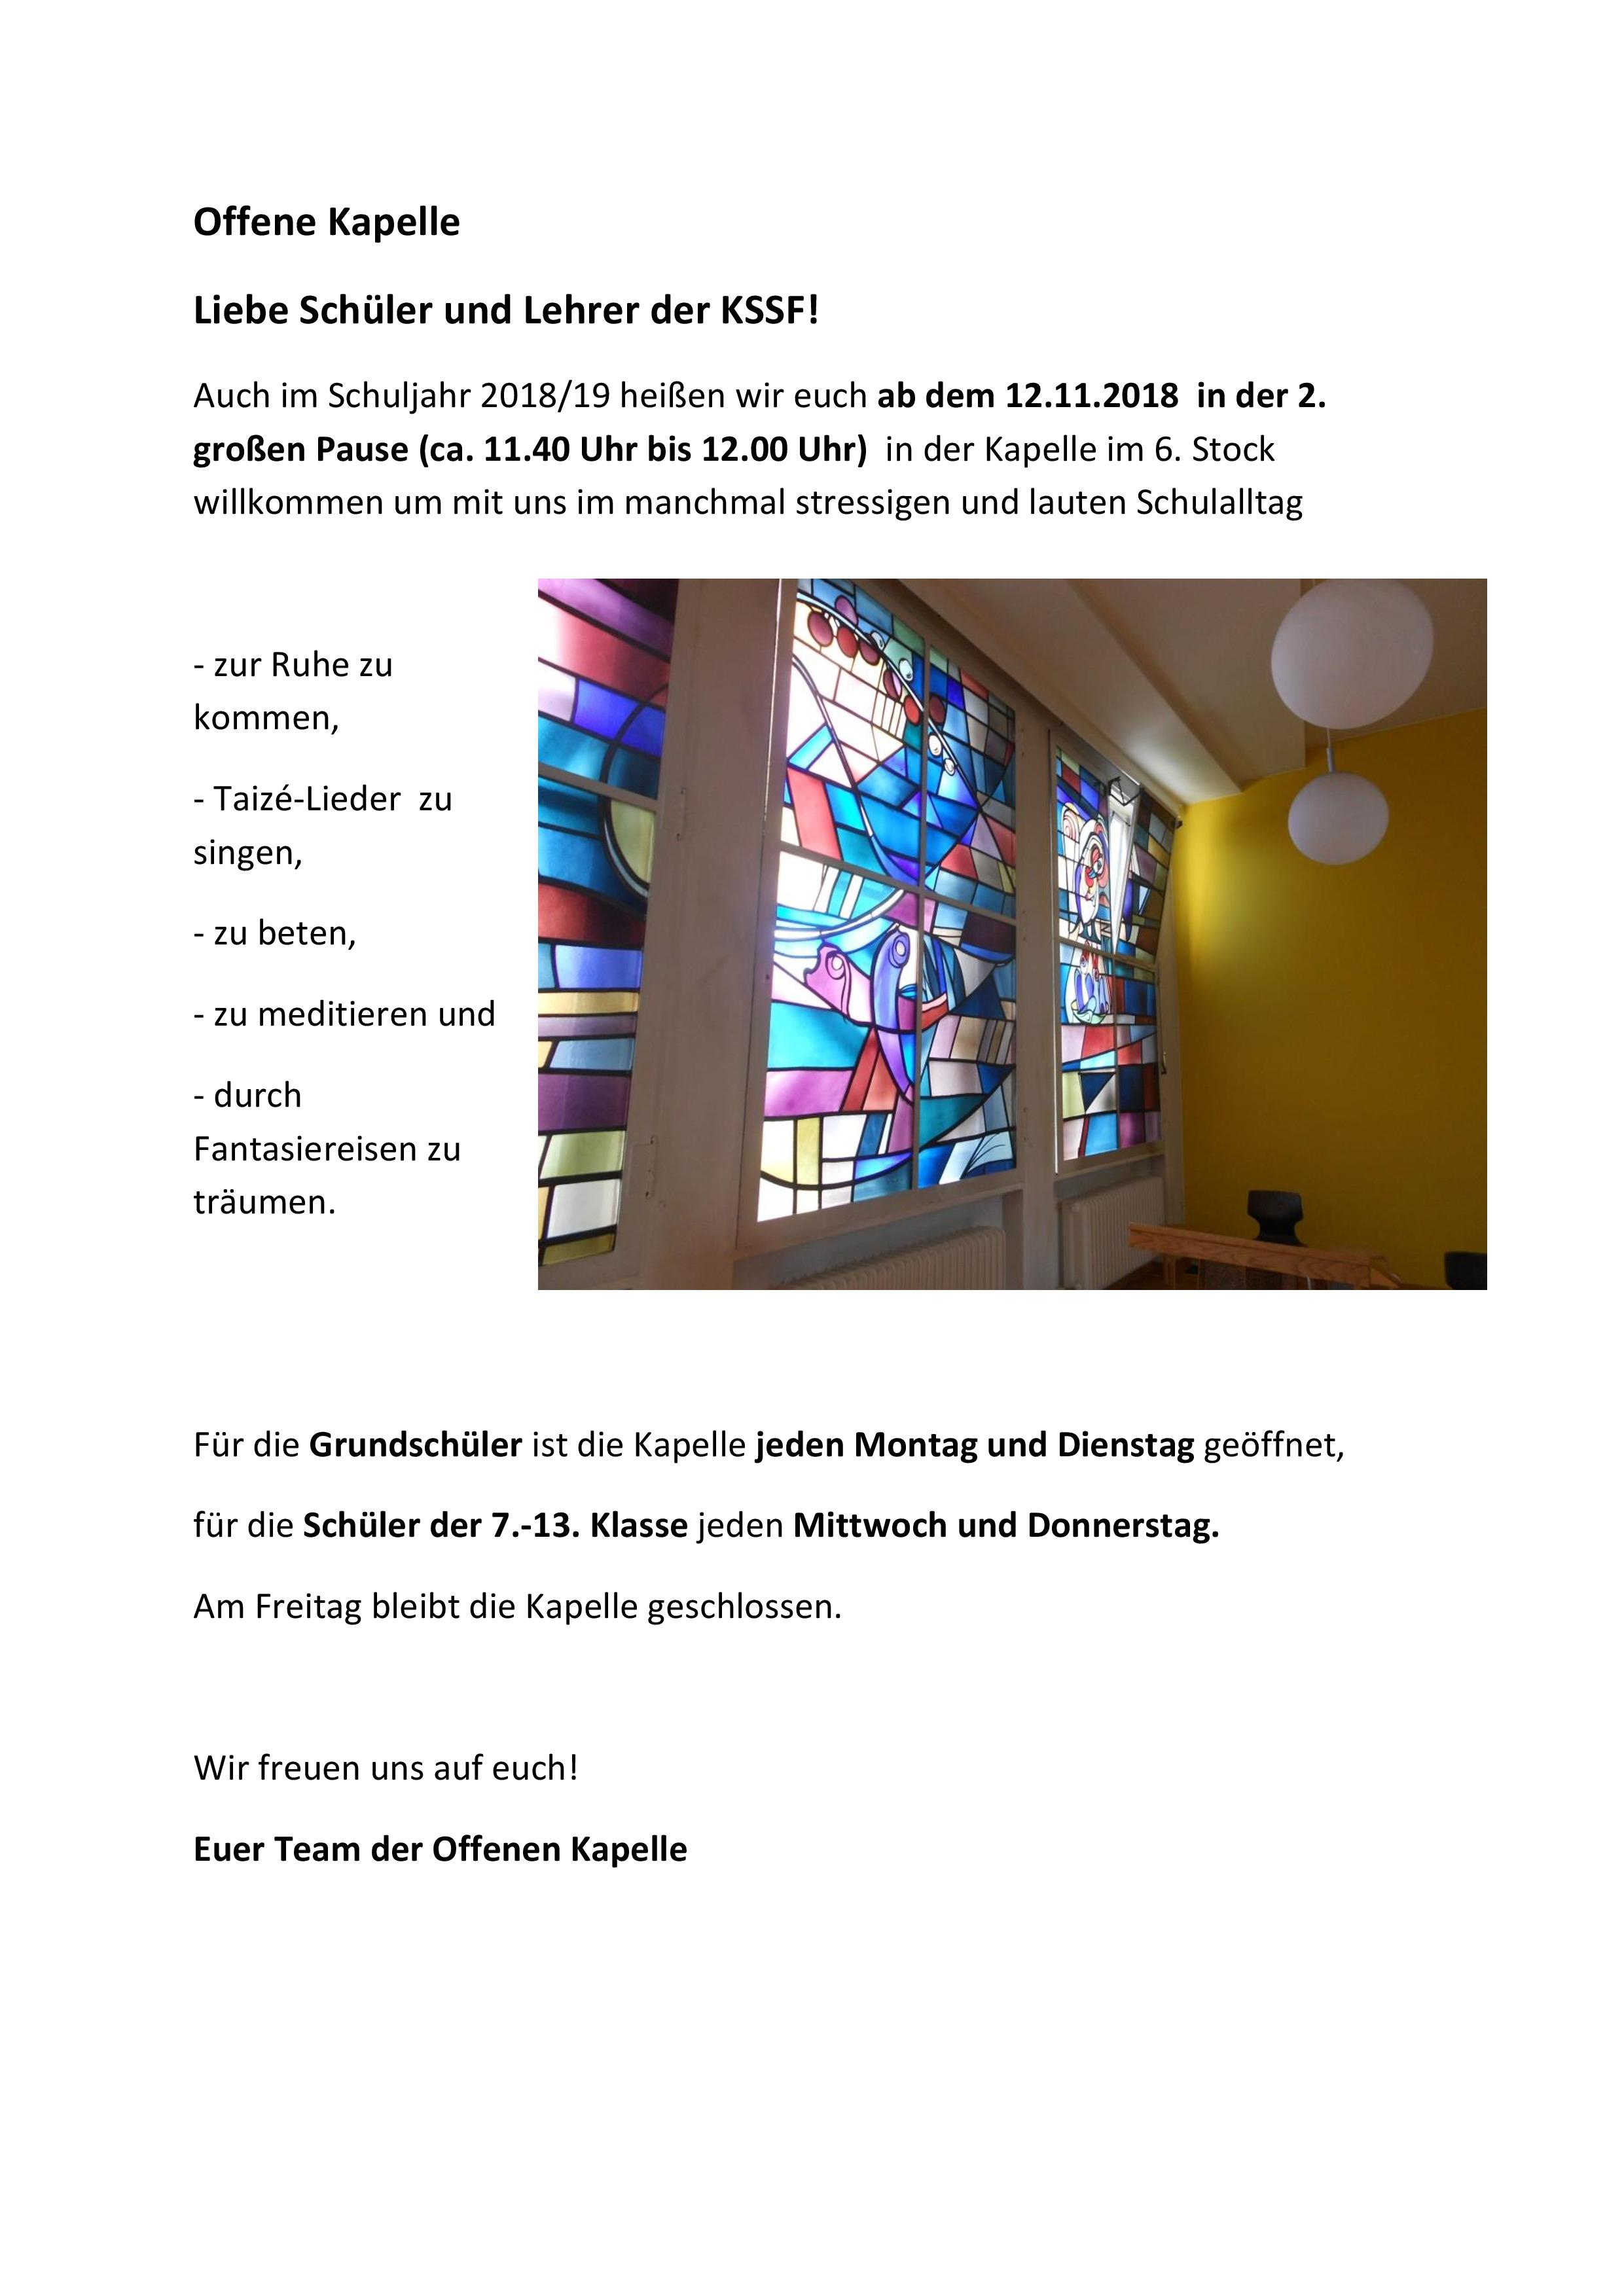 Offene Kapelle2018 Homepage-page-001